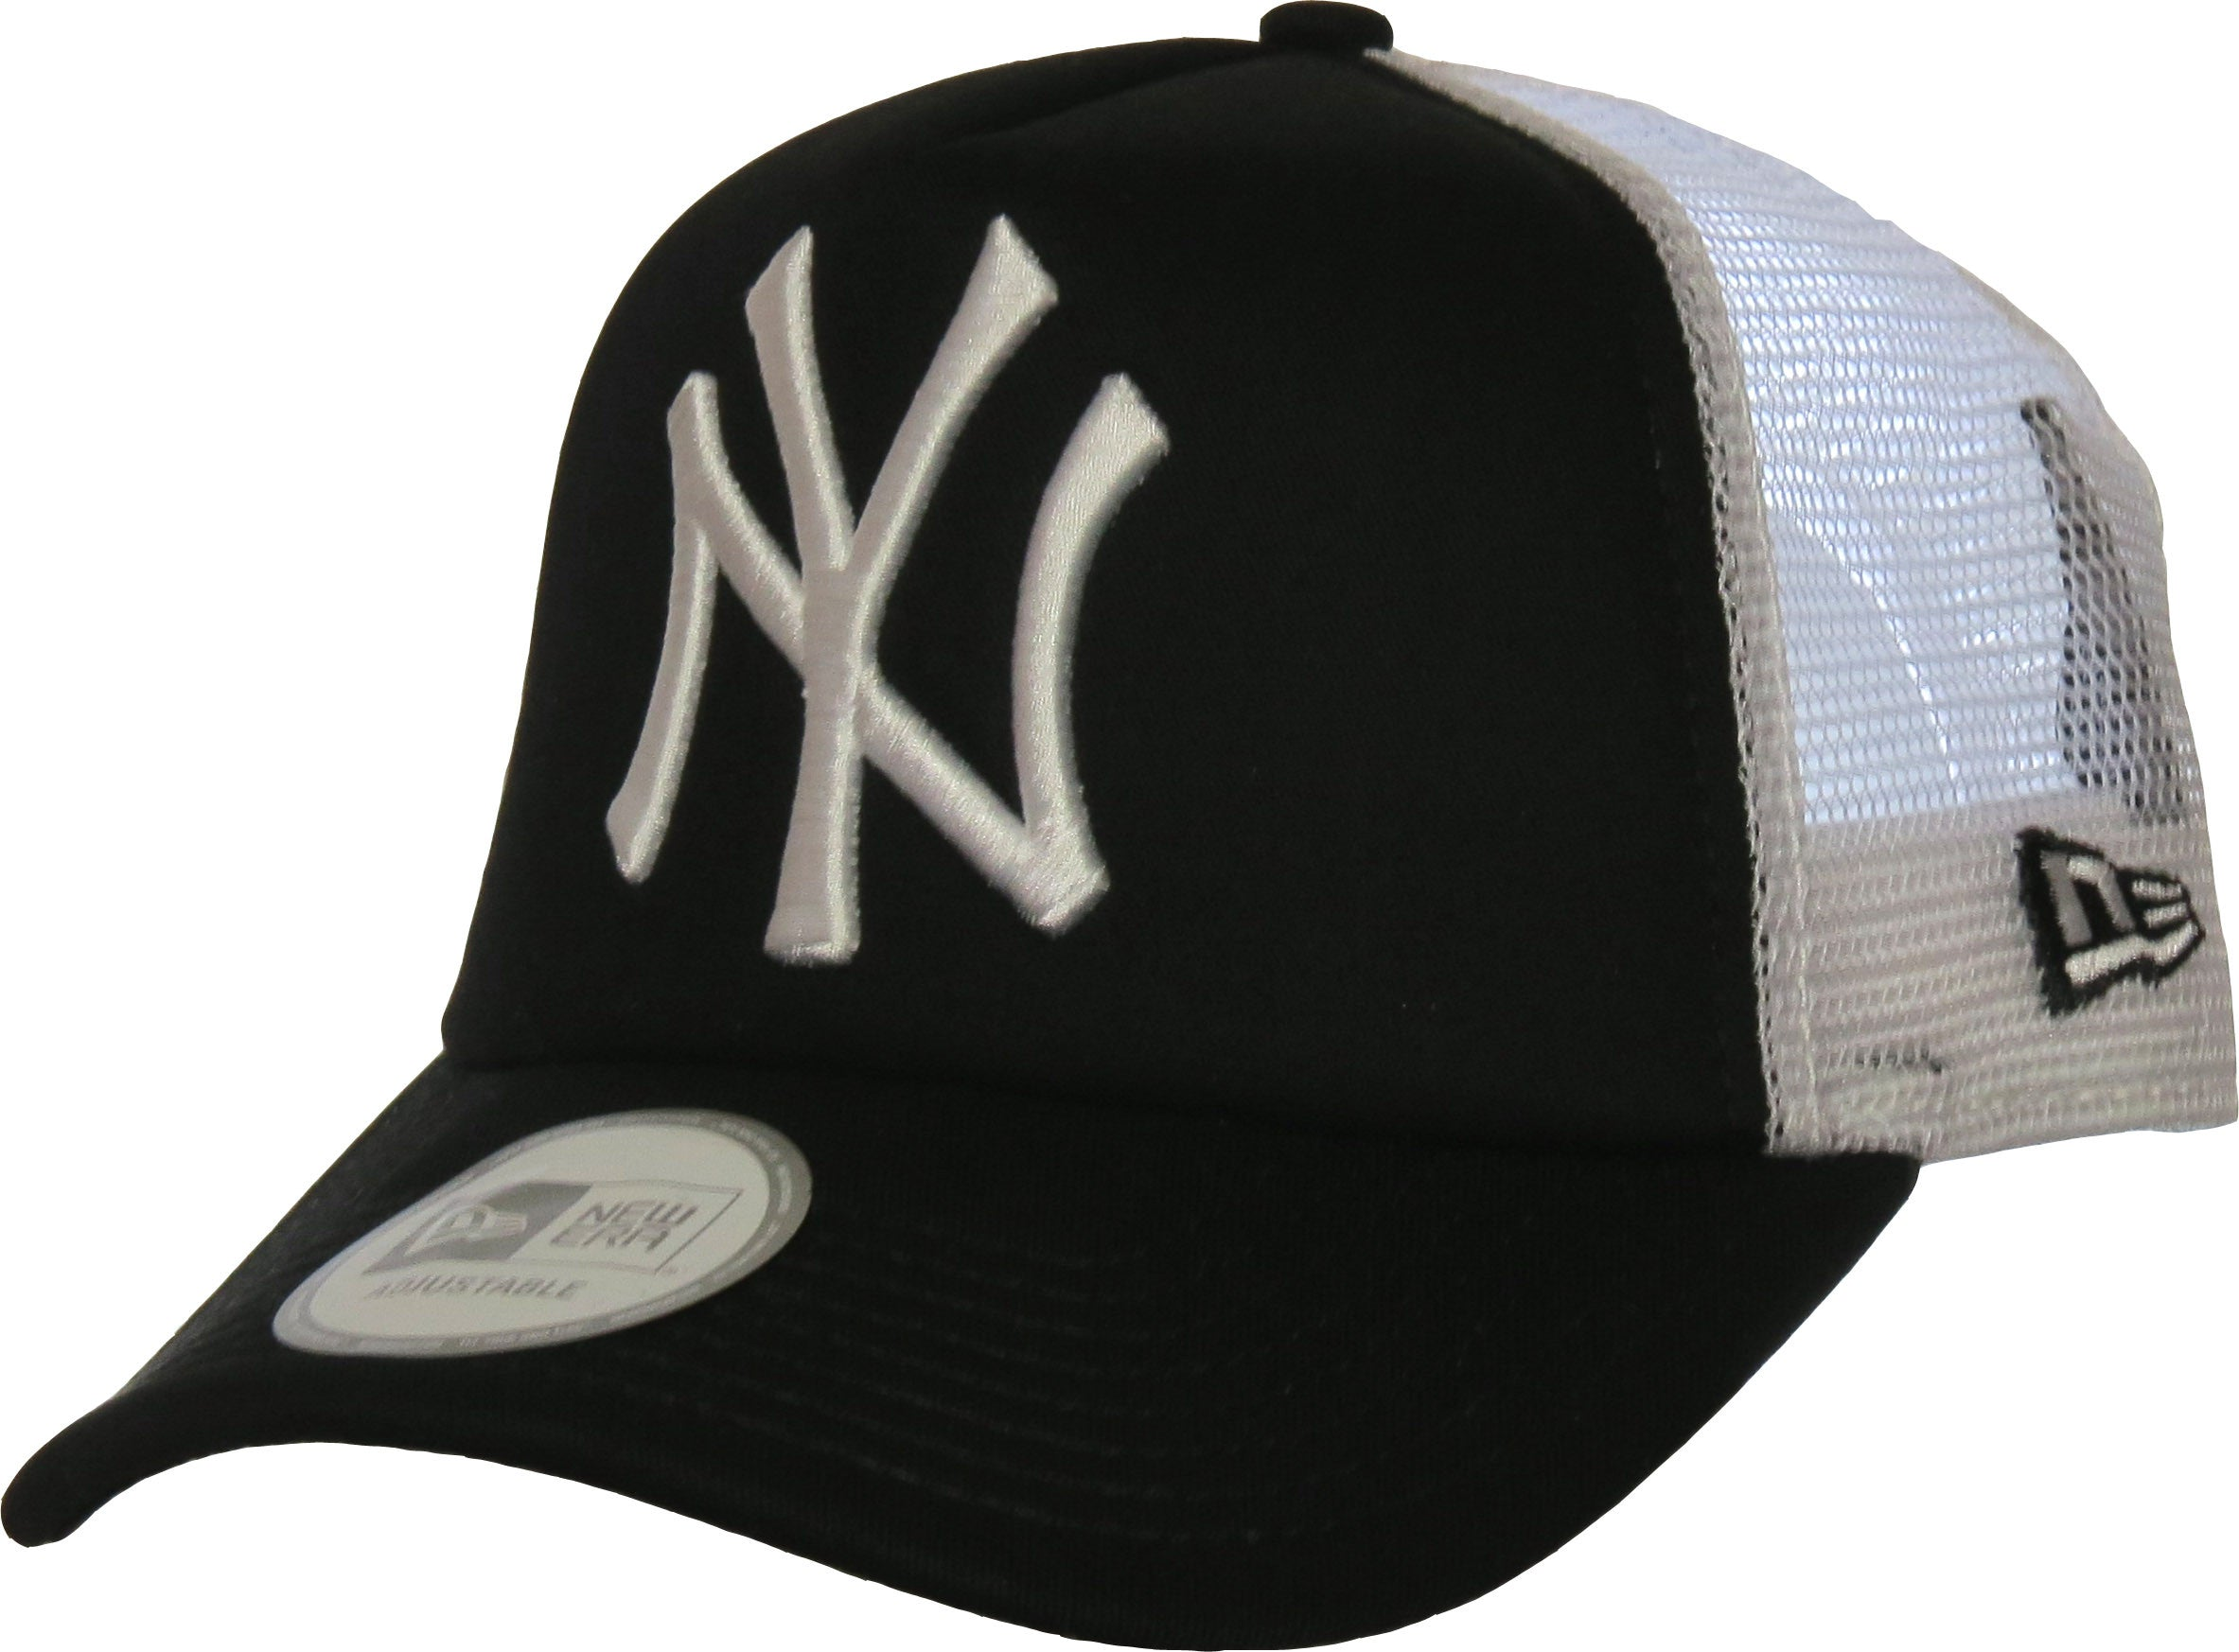 NY Yankees New Era Clean Trucker Cap - Black White - pumpheadgear 5e91d64b710b